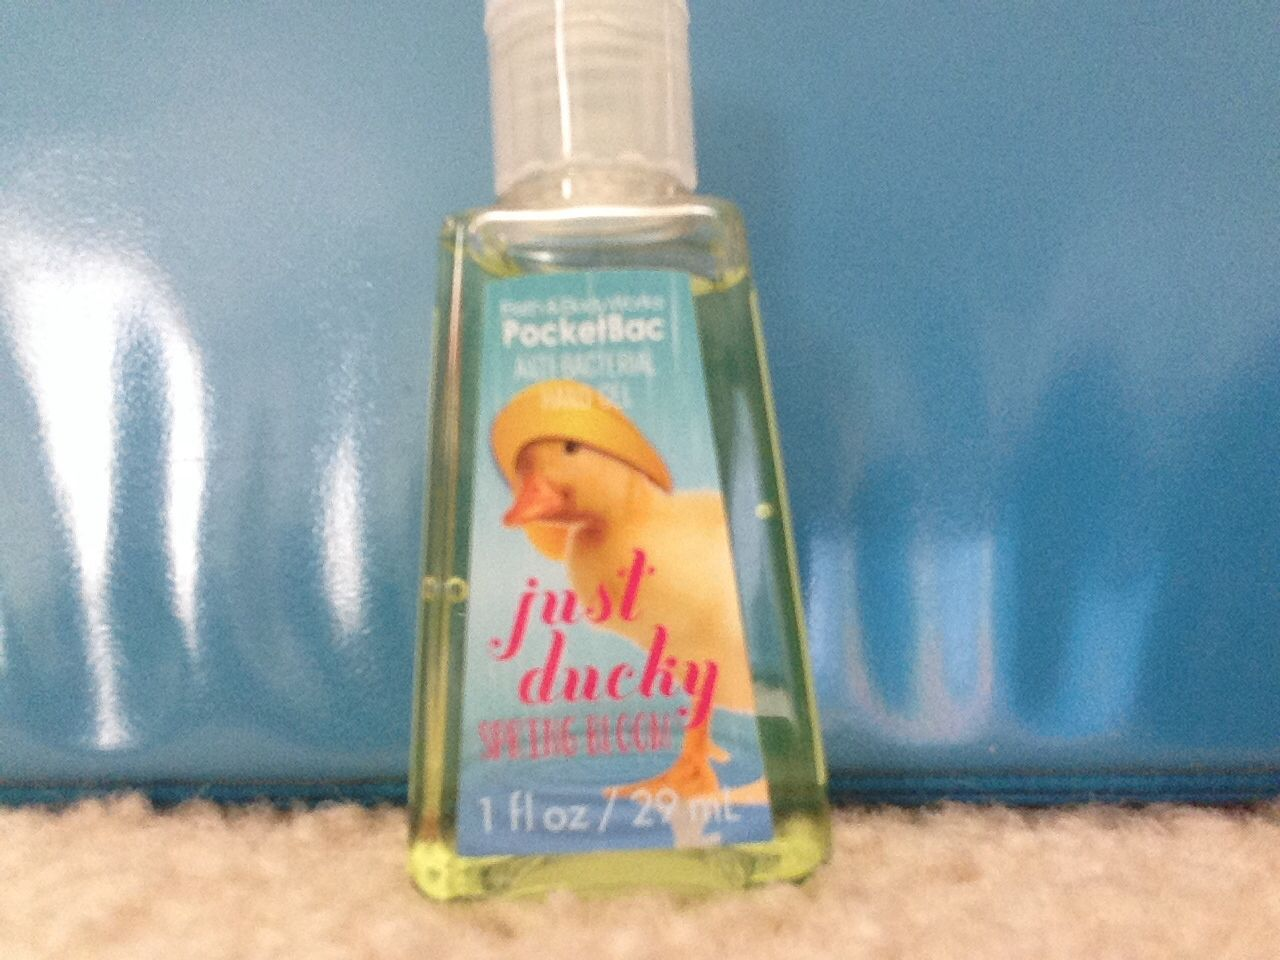 Just ducky in spring bloom pocket bac | Pocket bacs and other bath ...